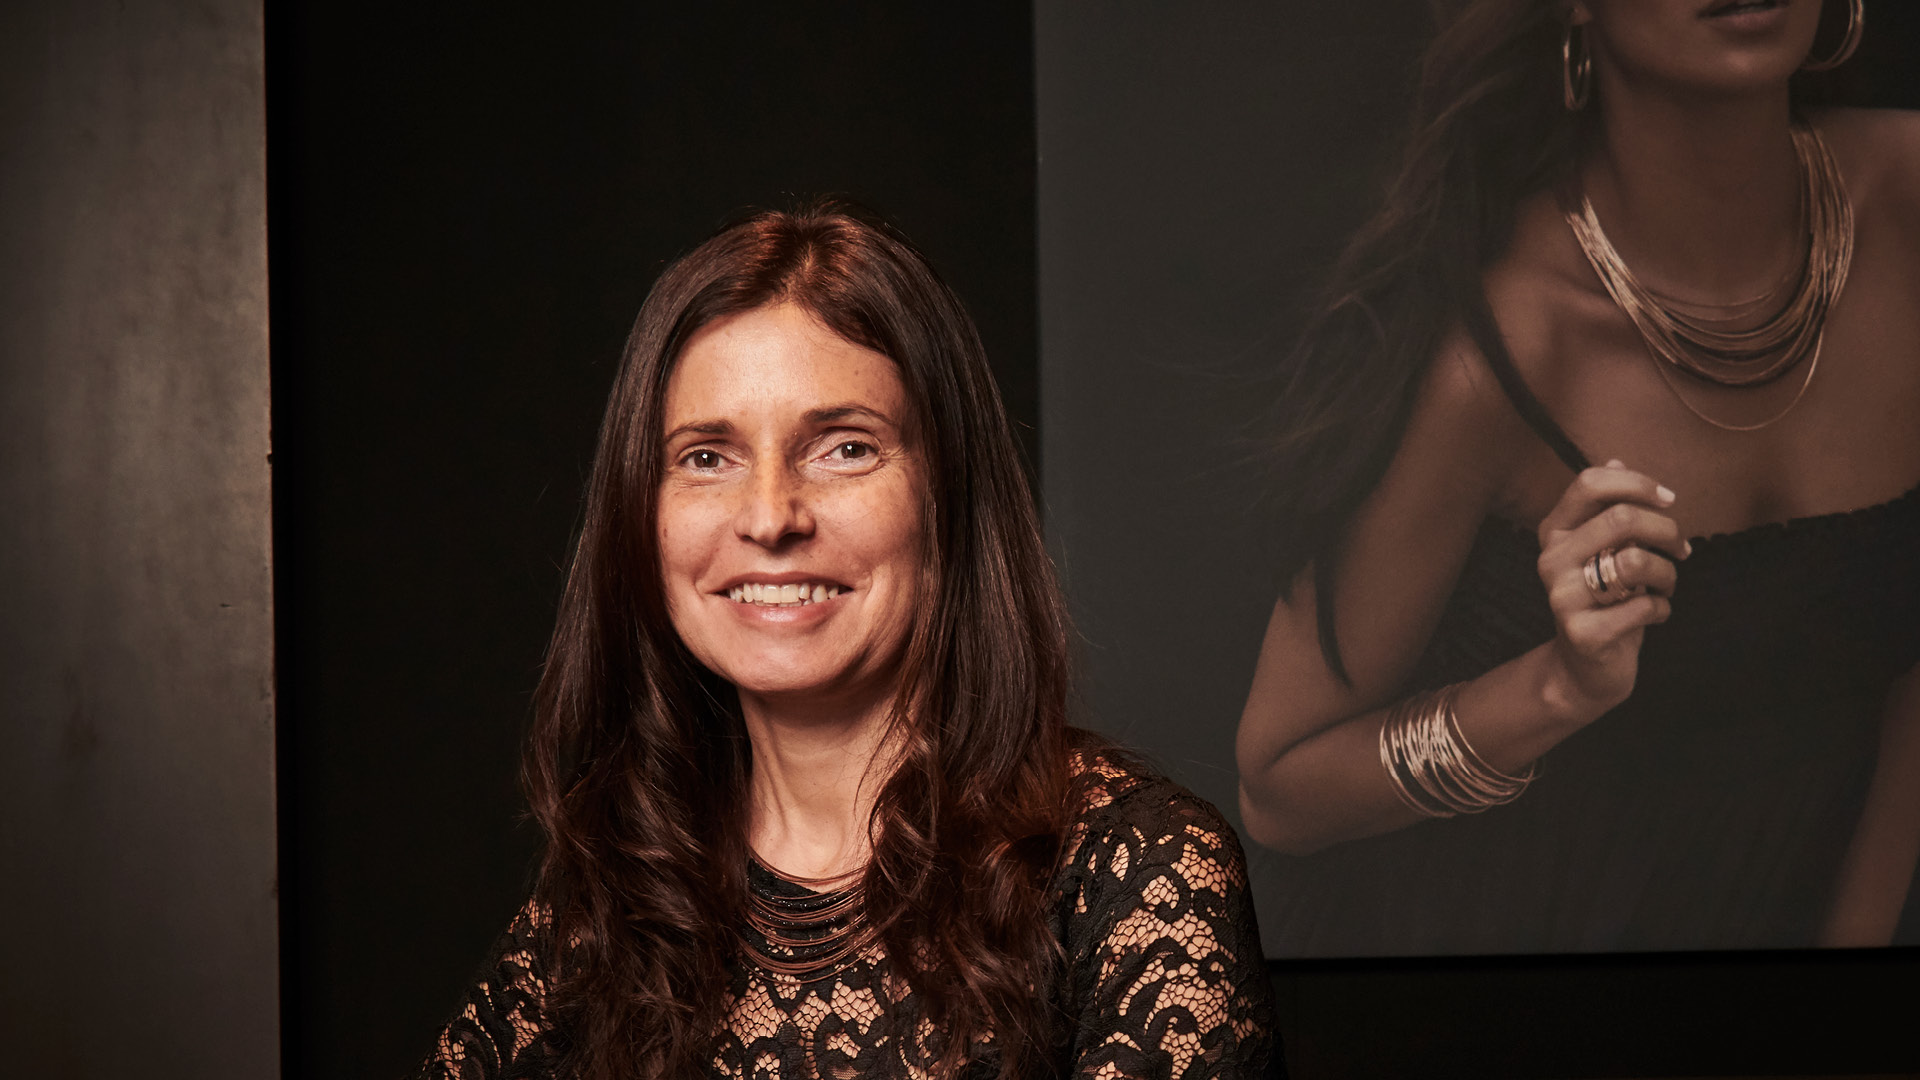 Chiara Carli, Creative Director and co-owner of the Italian jewellery brand Pesavento